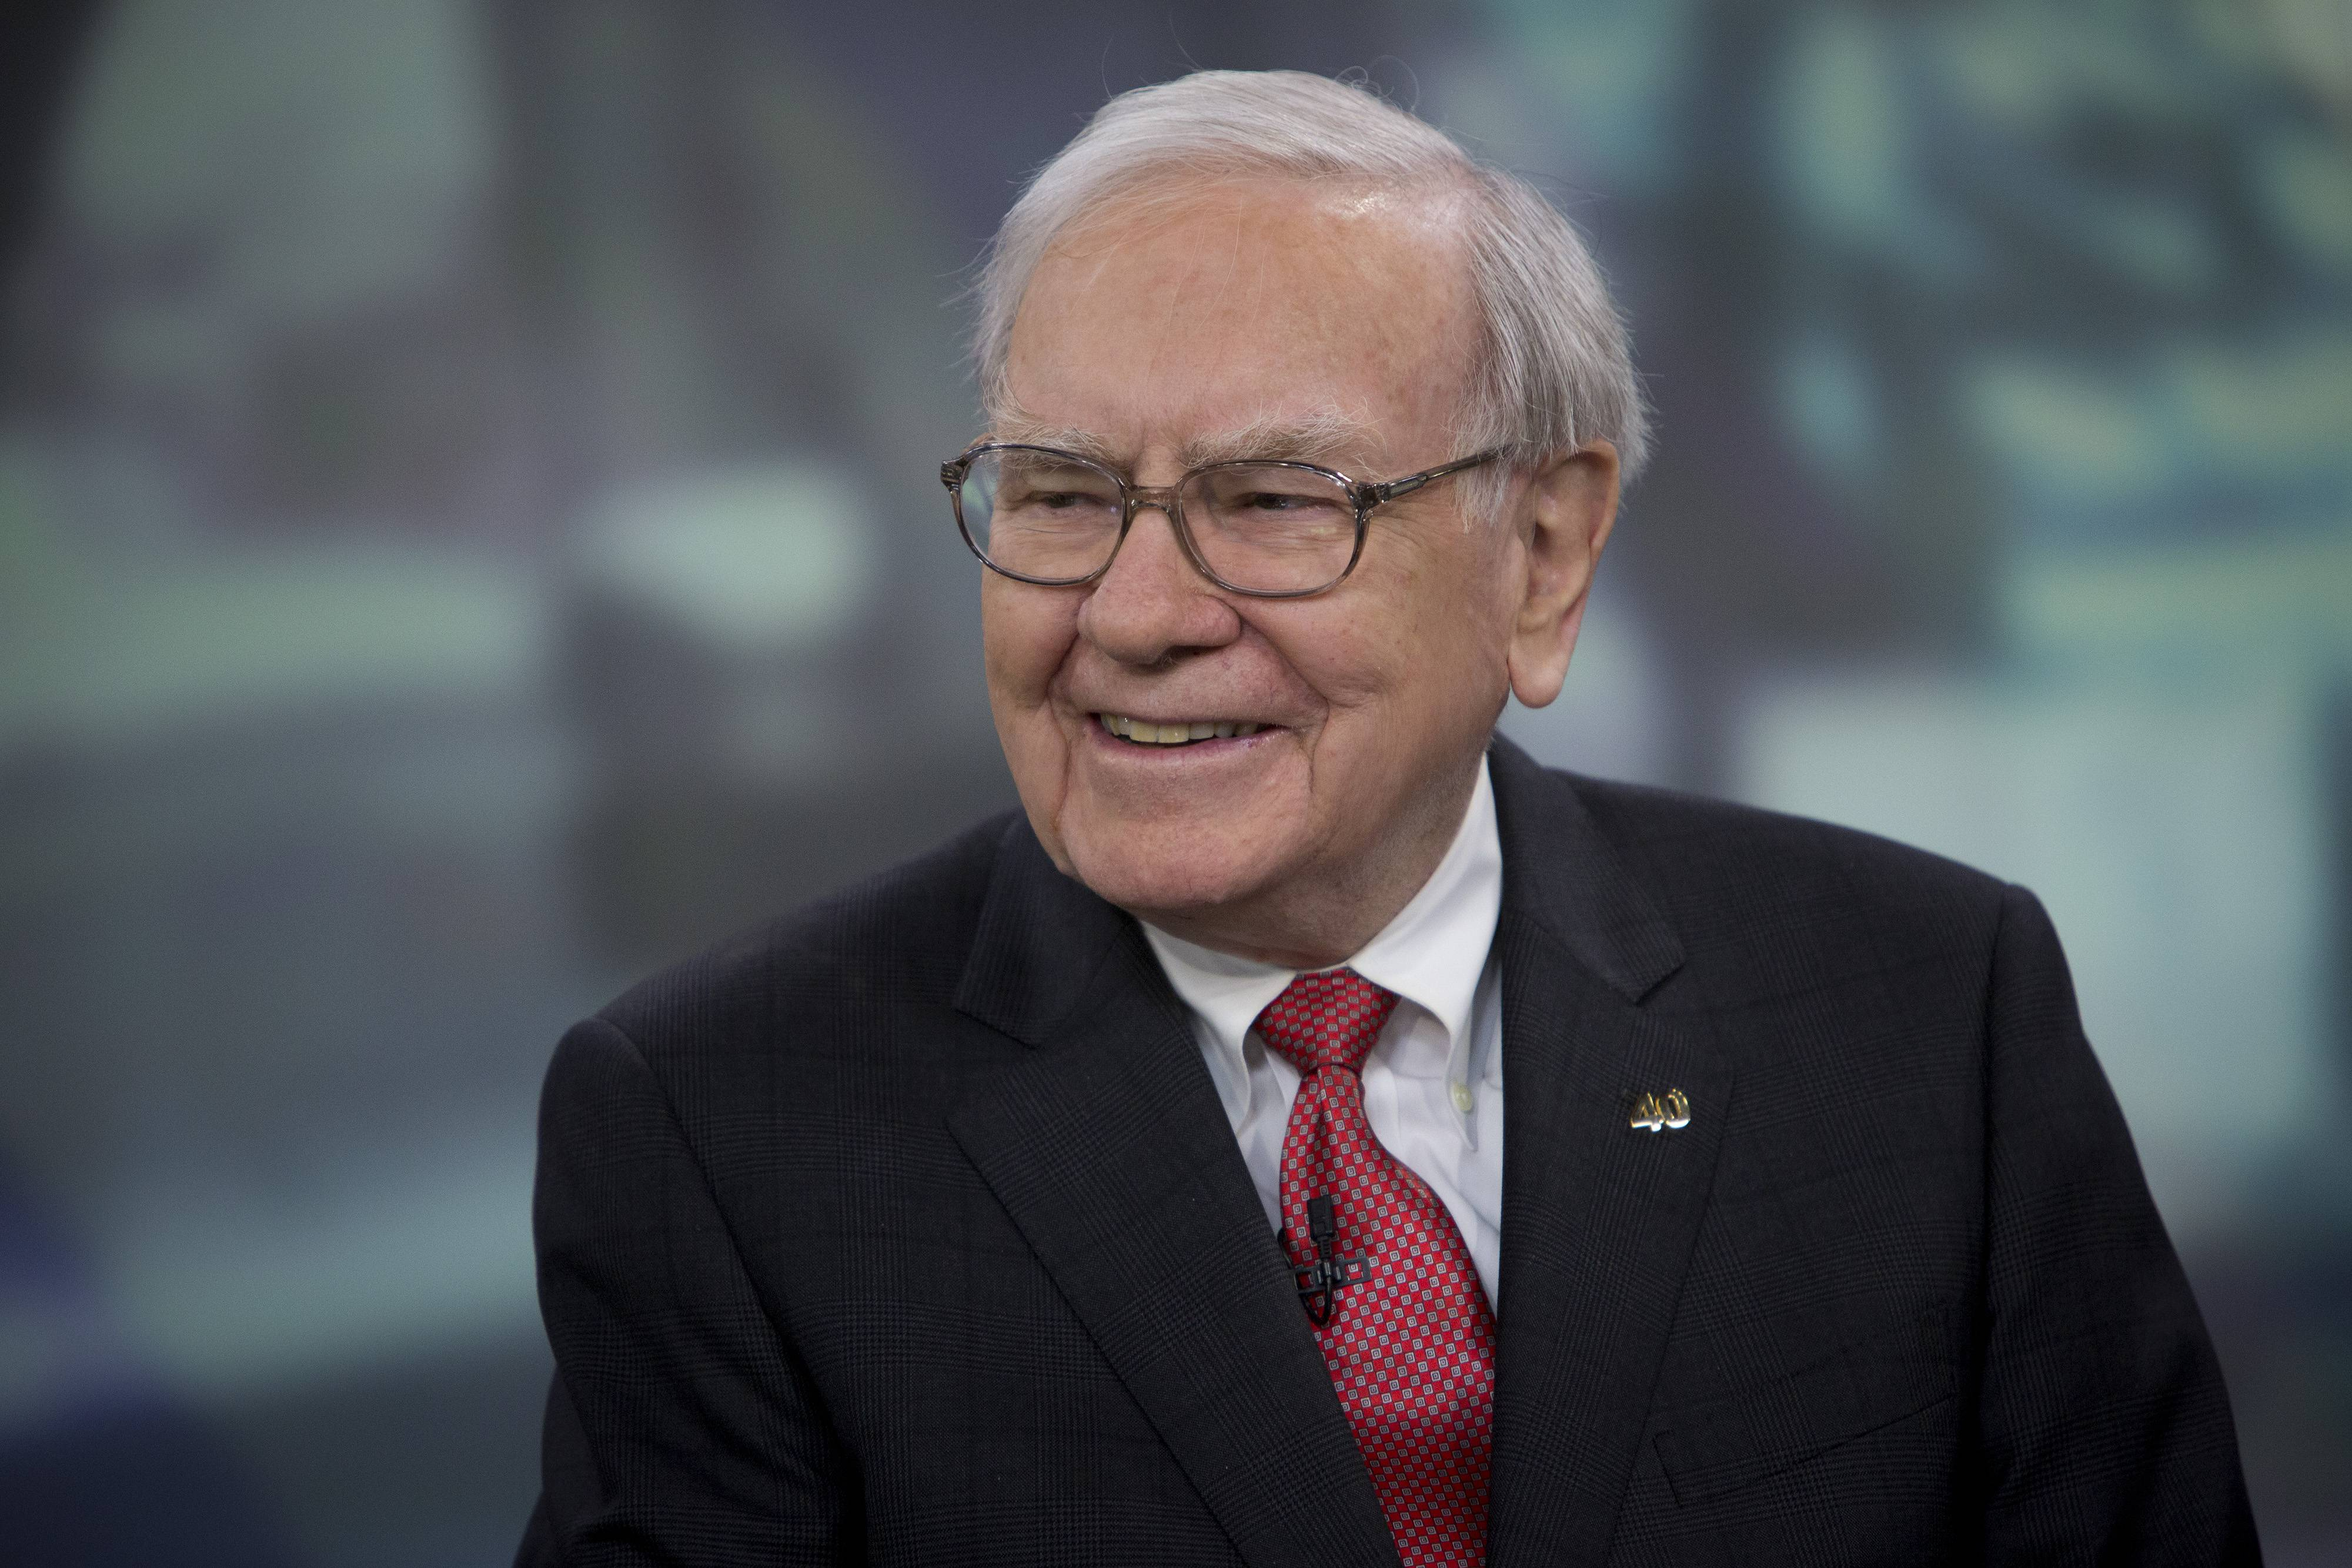 ASSOCIATED PRESS This man, Warren Buffett, chairman and chief executive officer of Berkshire Hathaway Inc., is willing to give you $1 billion, and all you have to do is pick the winners of some college basketball games. Oh, and the odds against you picking all the winners in the NCAA men's tournament, which begins this week, is about 9.2 quintillion-to-1.